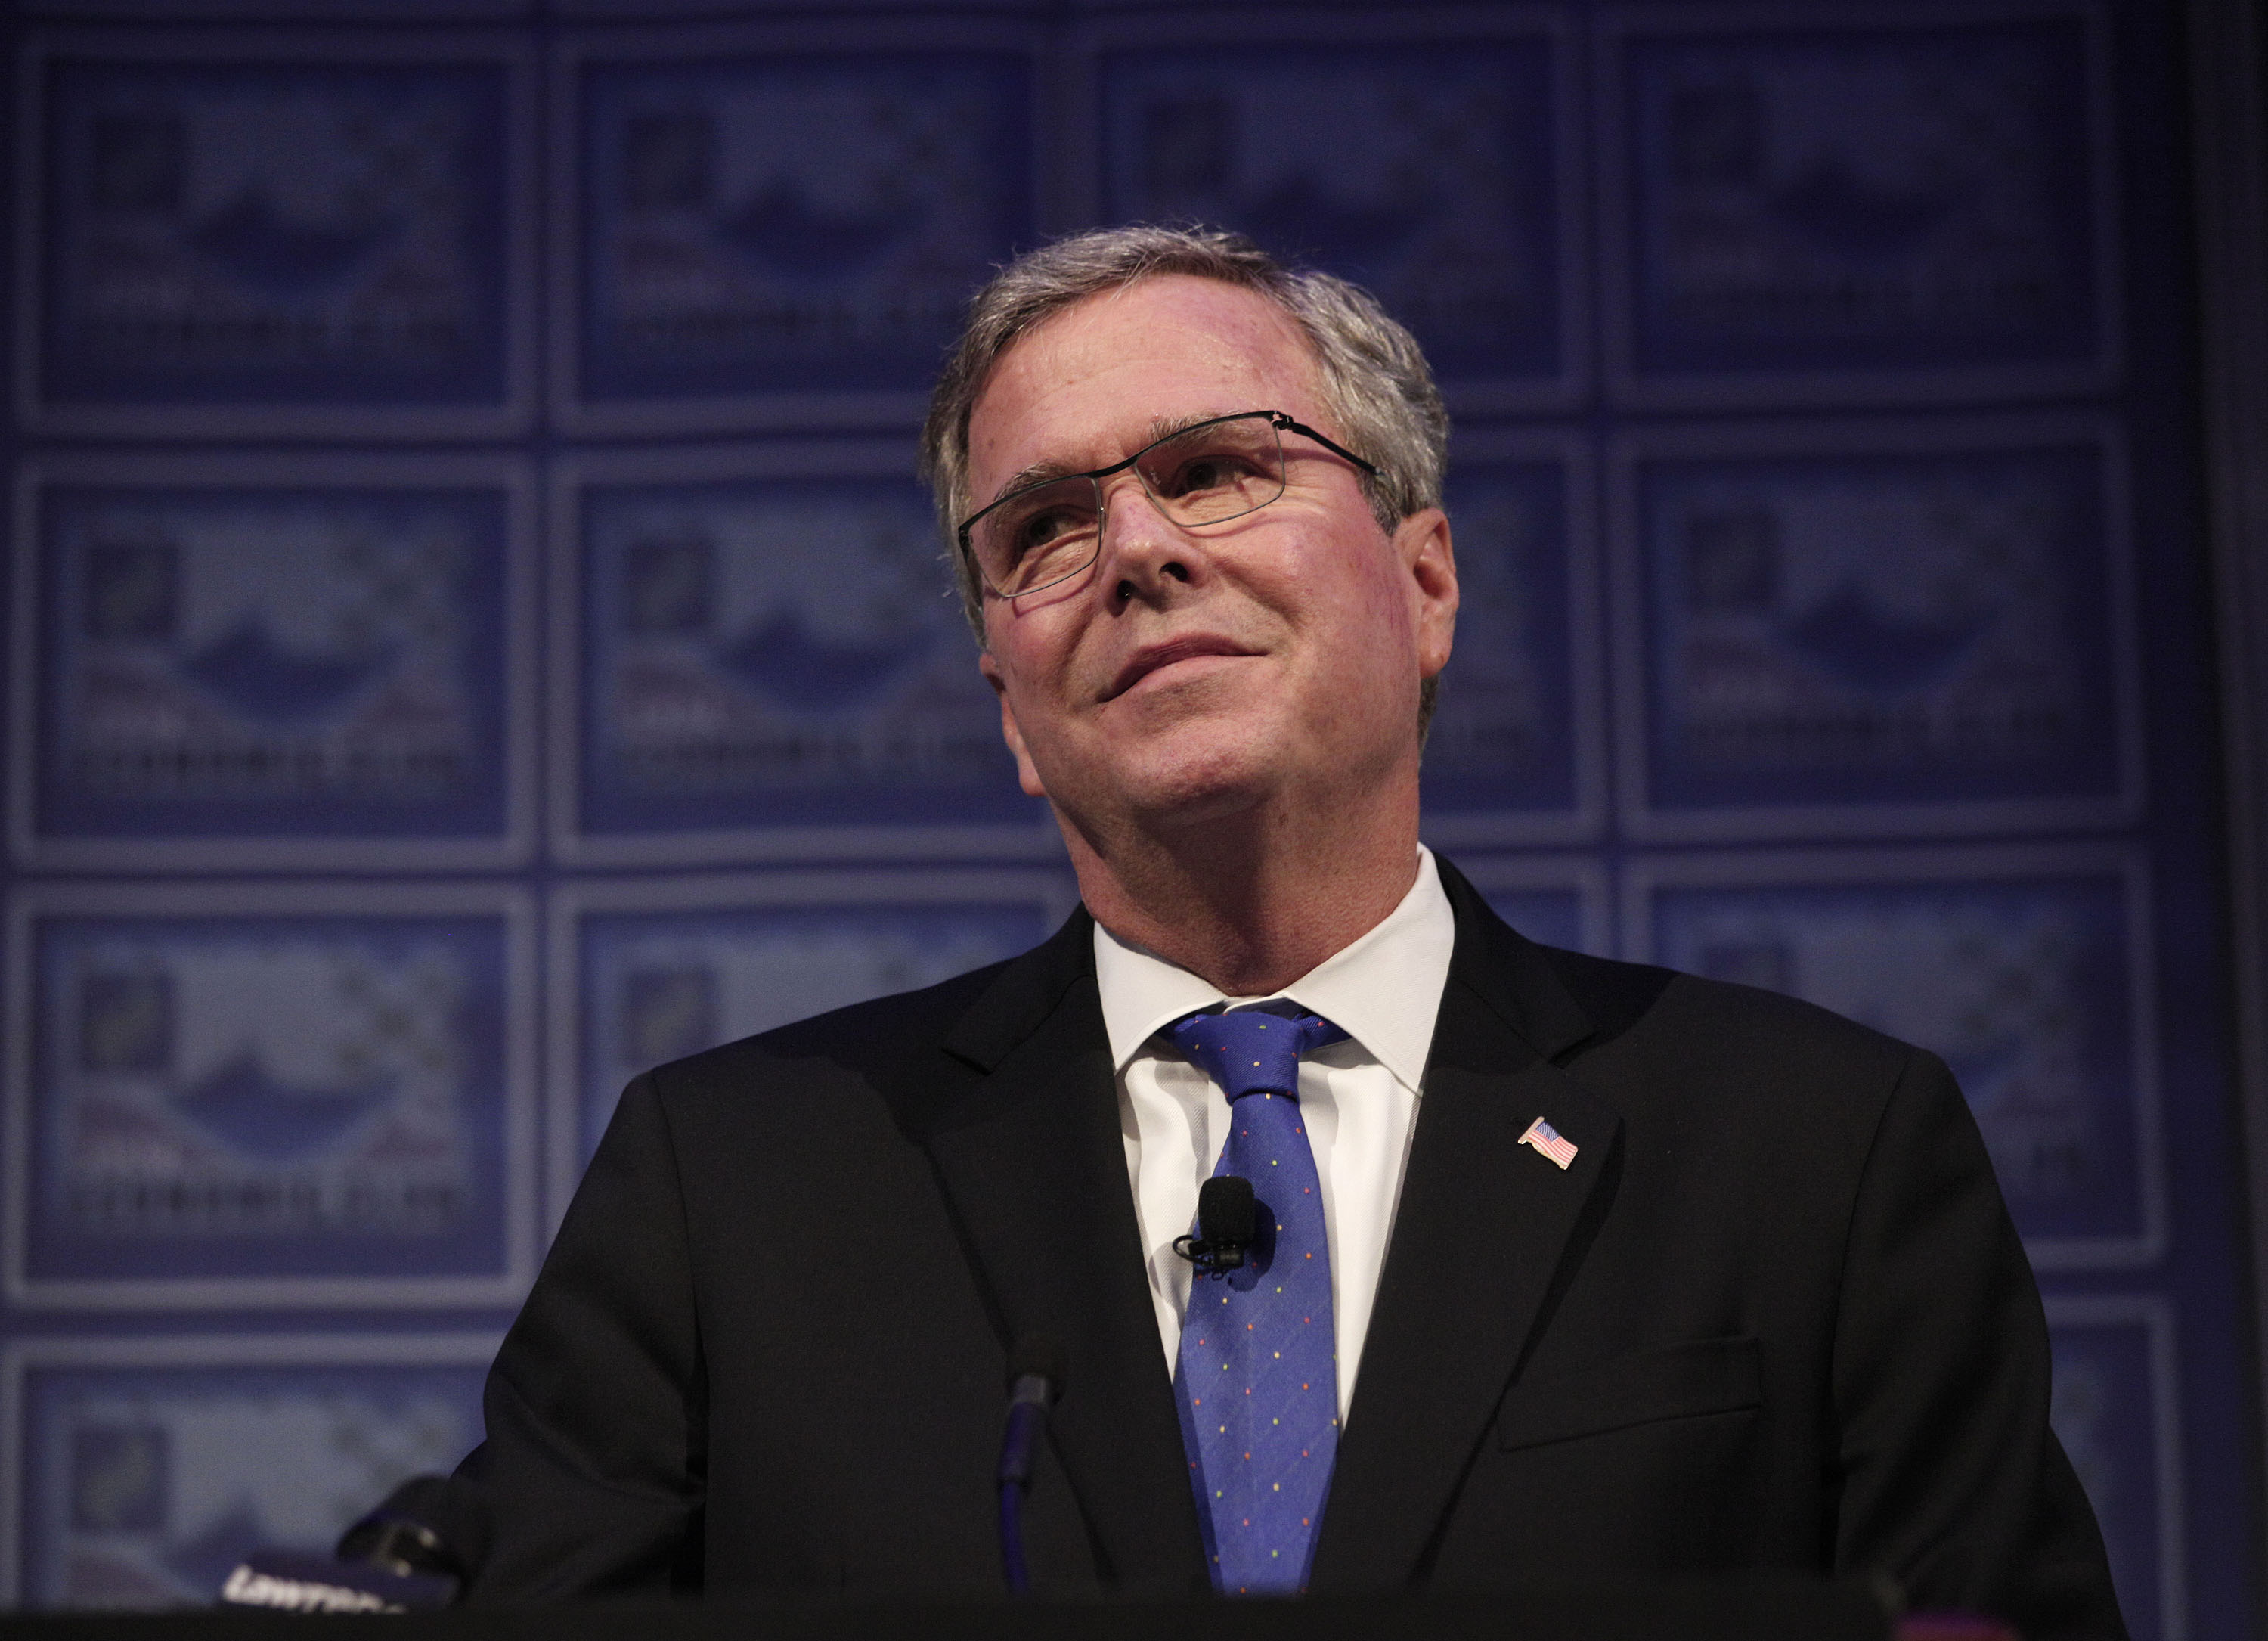 Former Florida Governor Jeb Bush speaks at the Detroit Economic Club on Feb. 4, 2015 in Detroit.